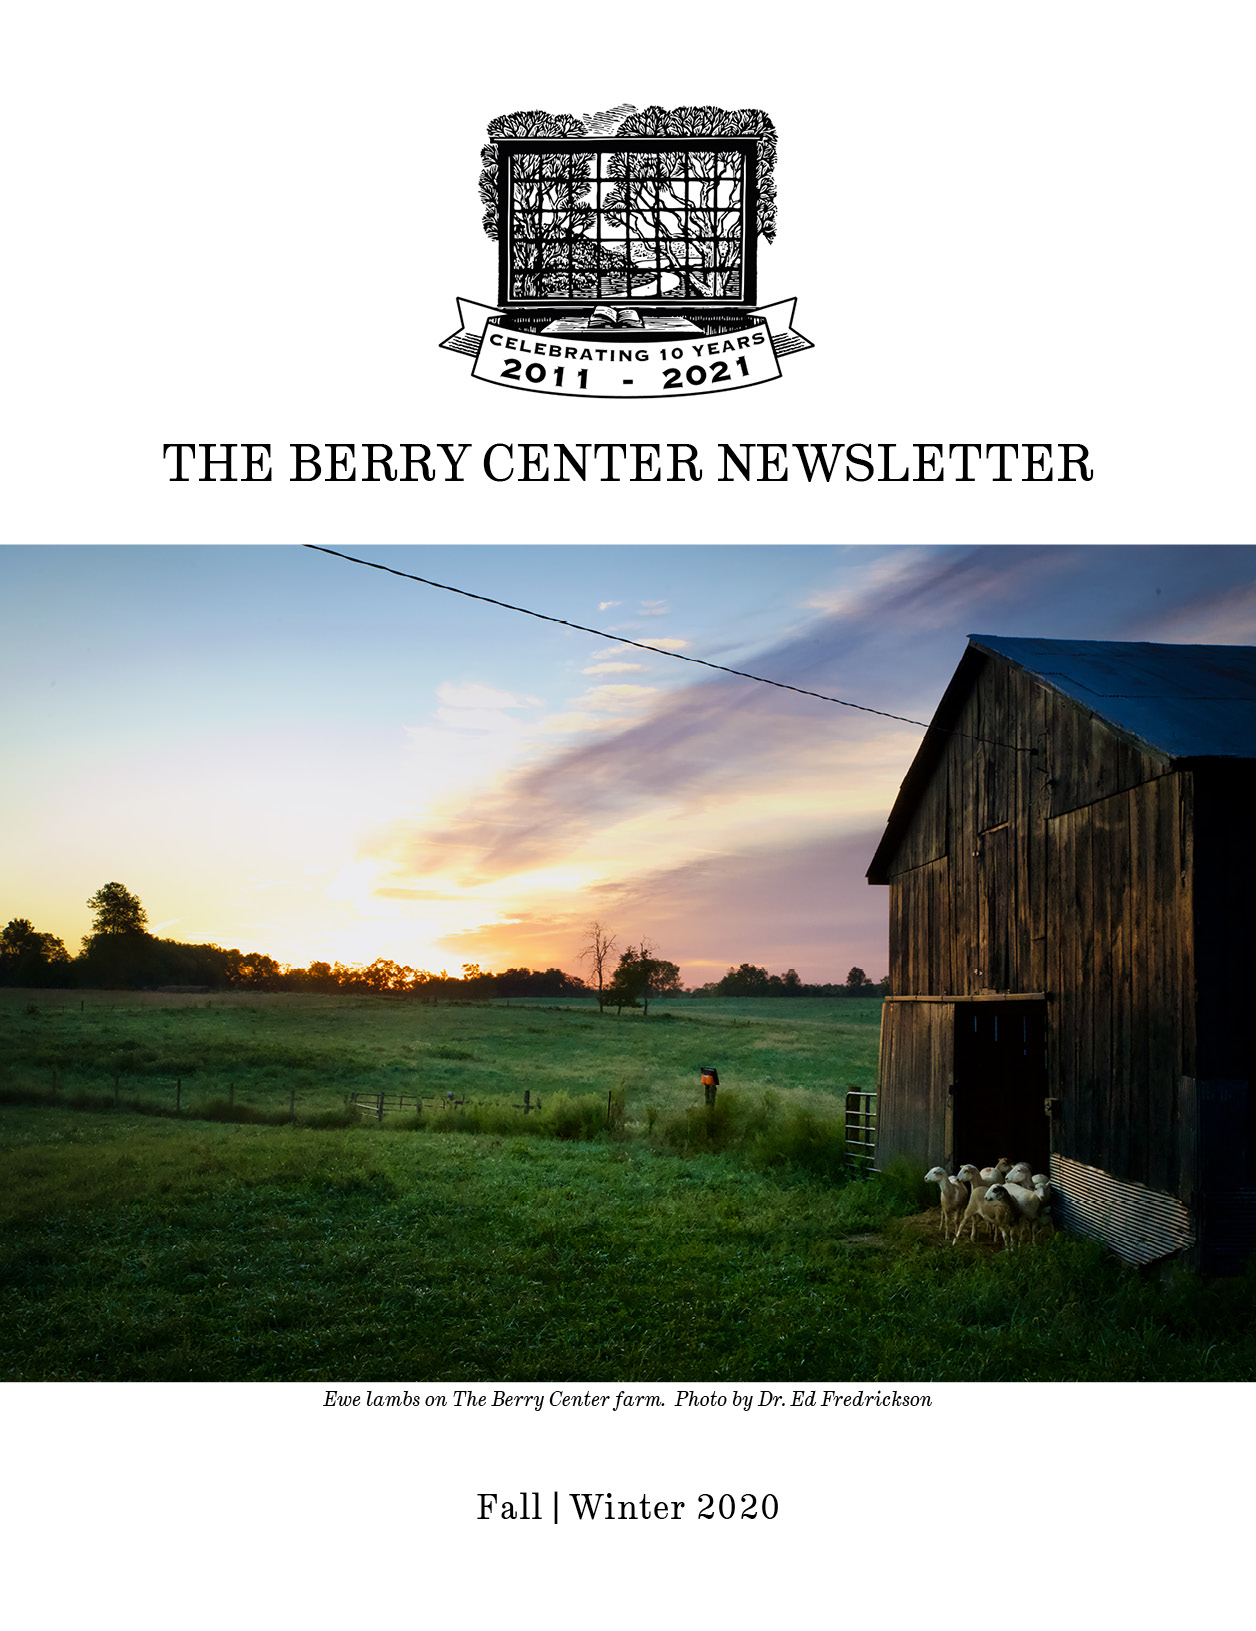 The Berry Center Newsletter Fall/Winter 2020 cover